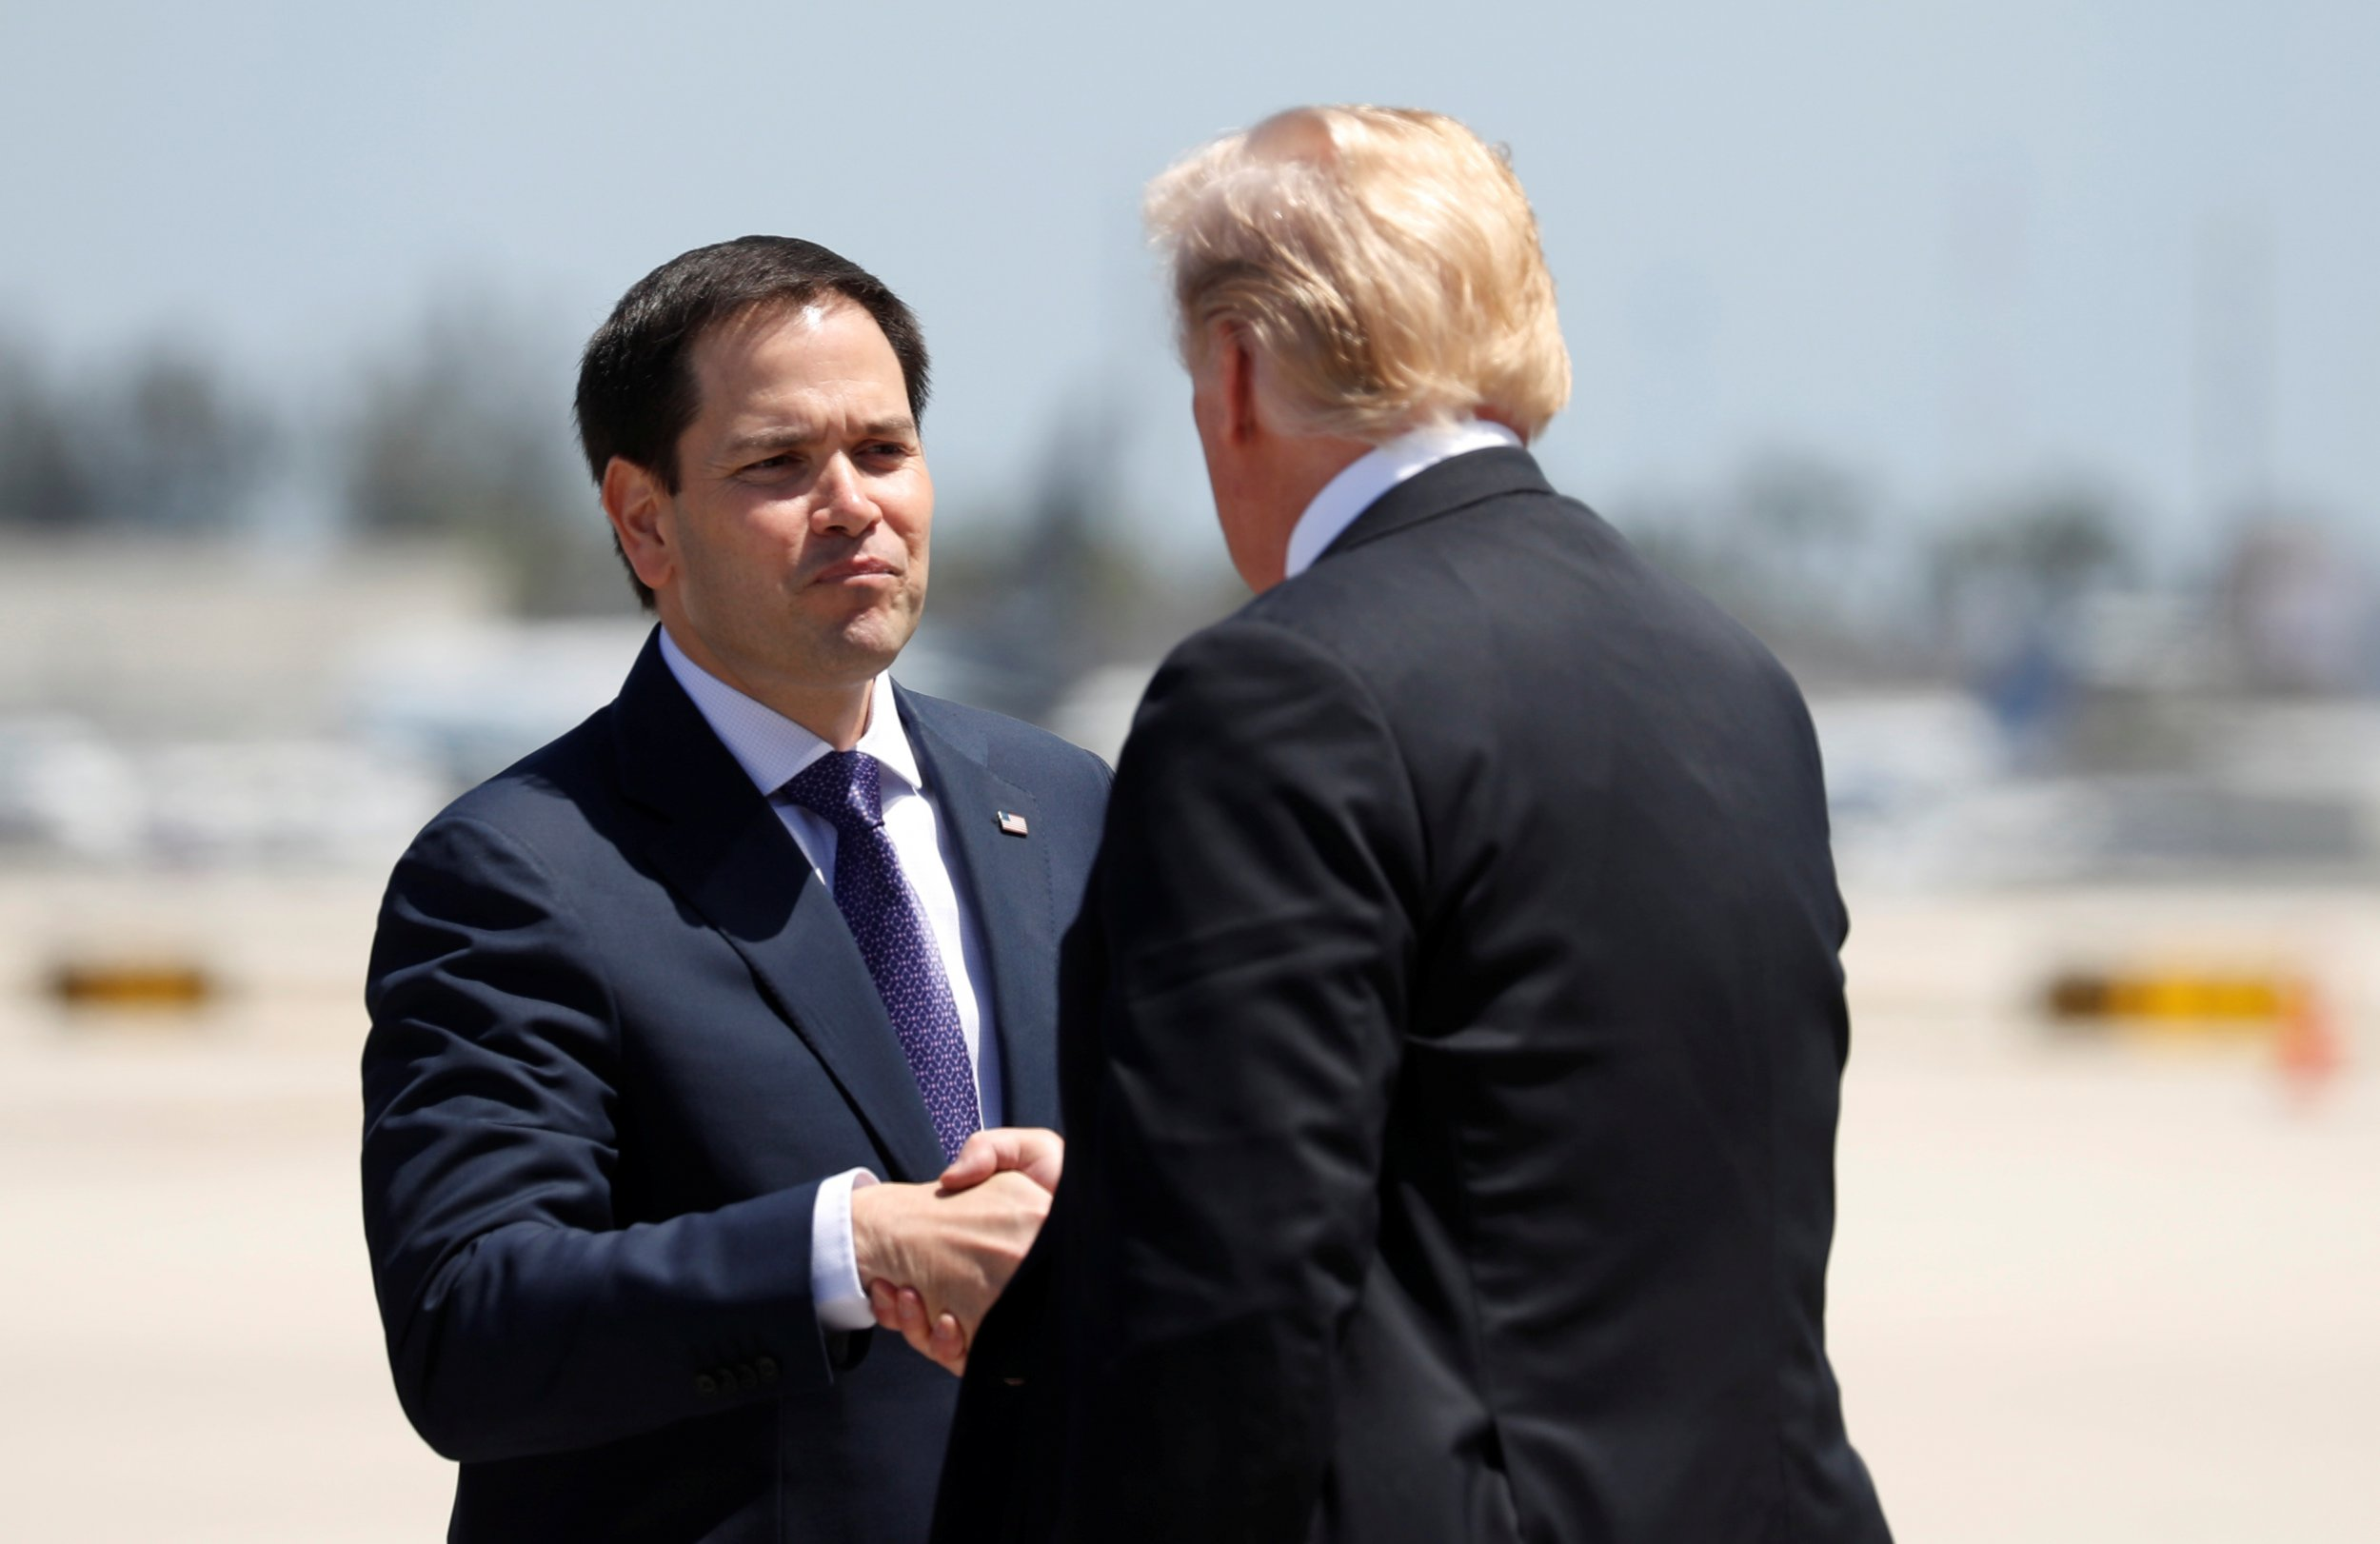 U.S. President Donald Trump is greeted by Senator Marco Rubio (R-FL) upon his arrival in Miami, Florida, U.S., April 16, 2018.